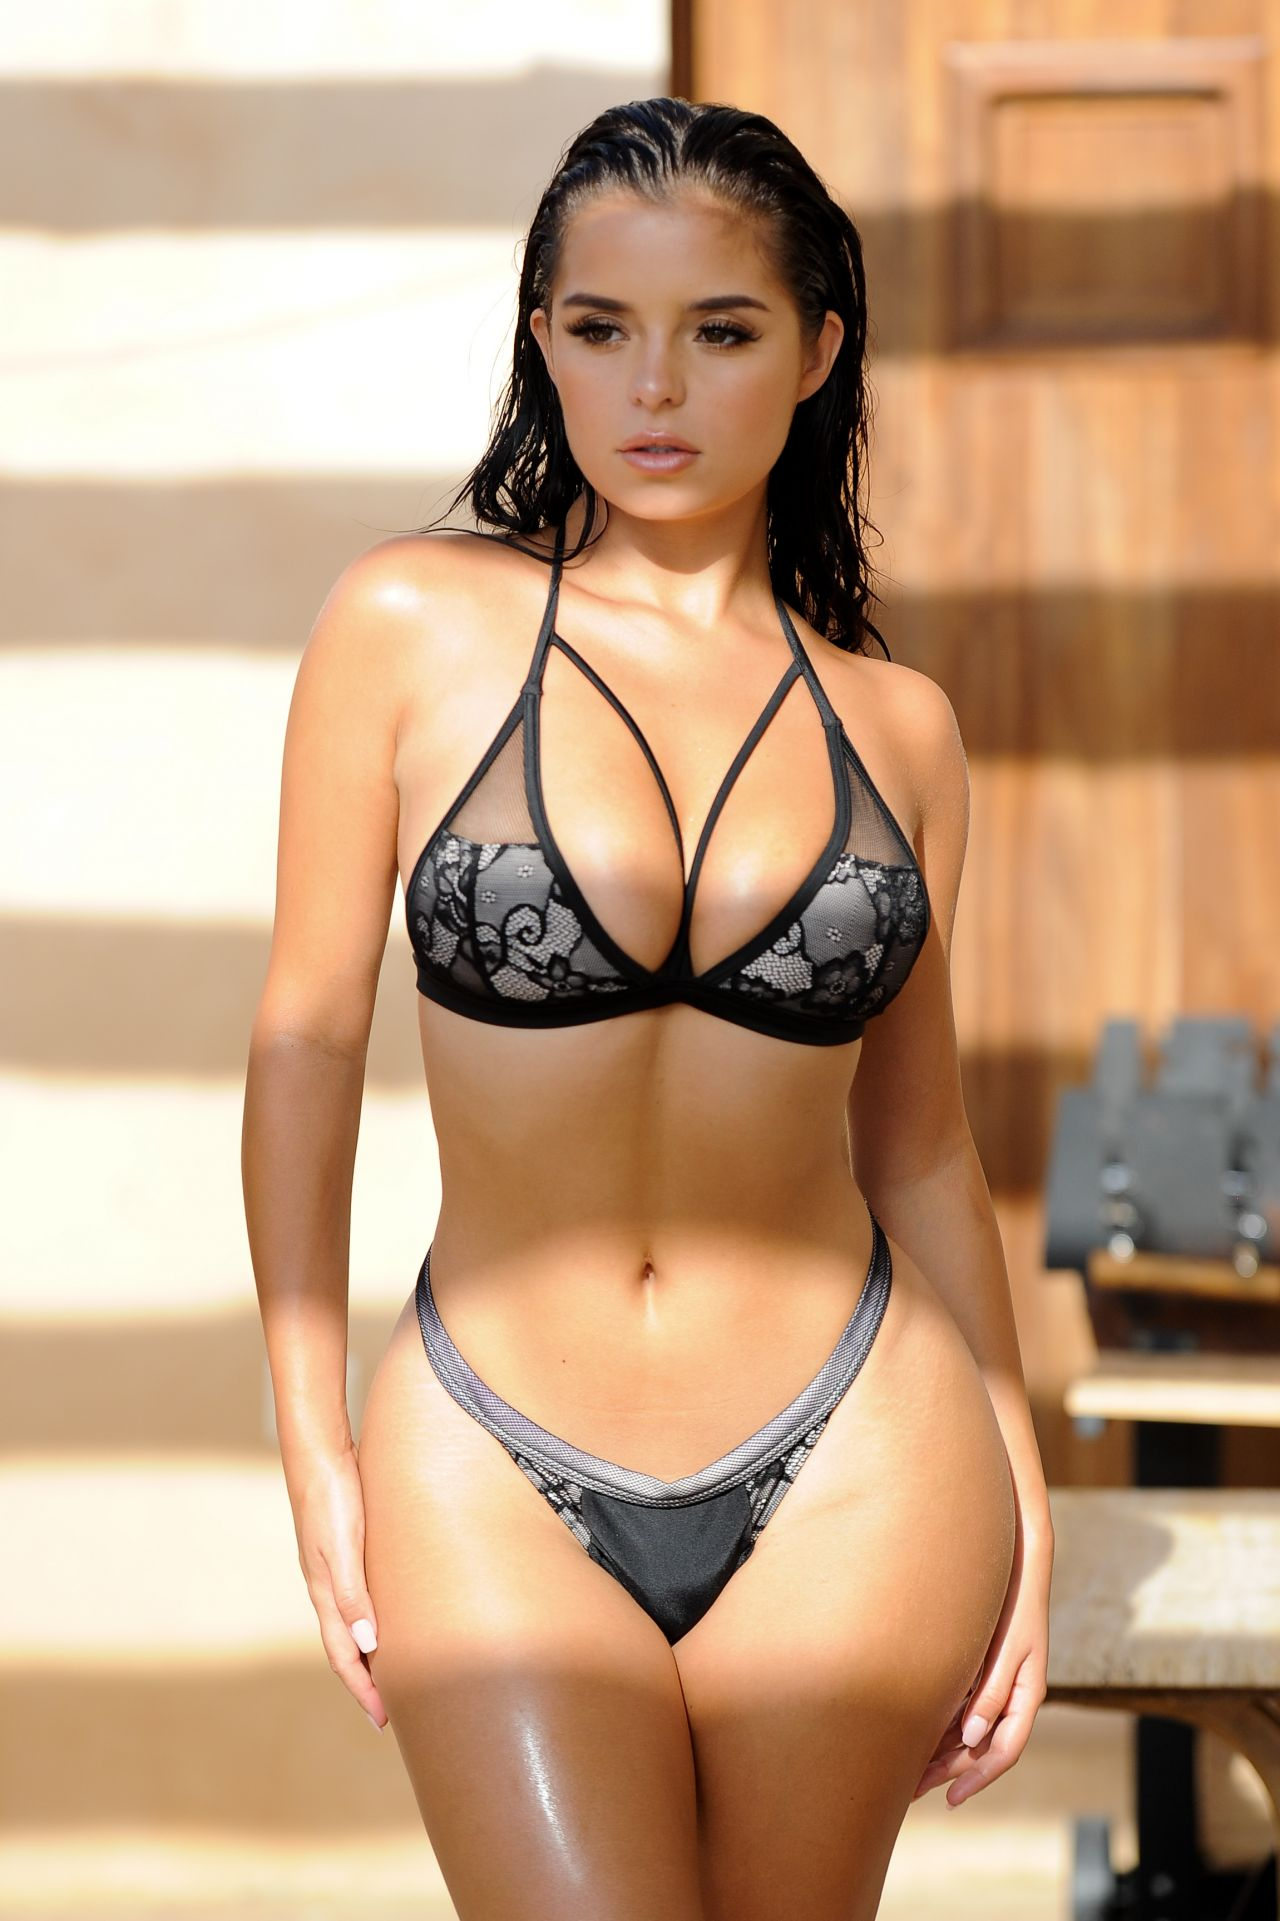 Demi Rose V Bikini - Photoshoot V Ibiza 09192017-3818